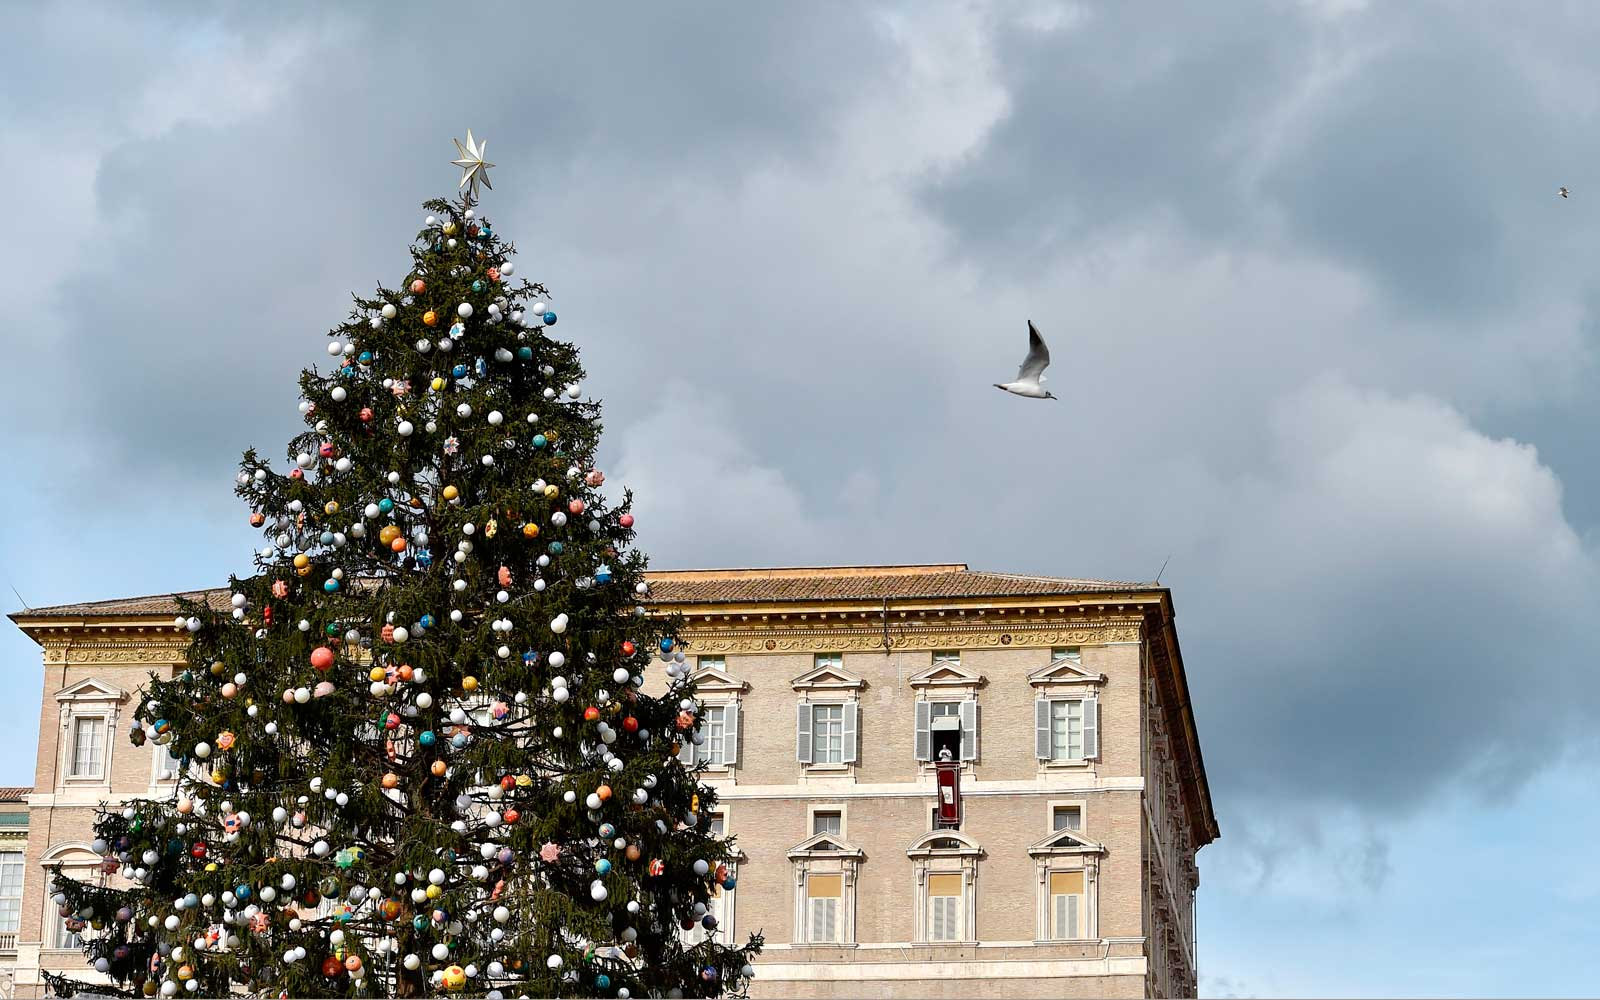 Vatican Christmas tree in St Peter's Square